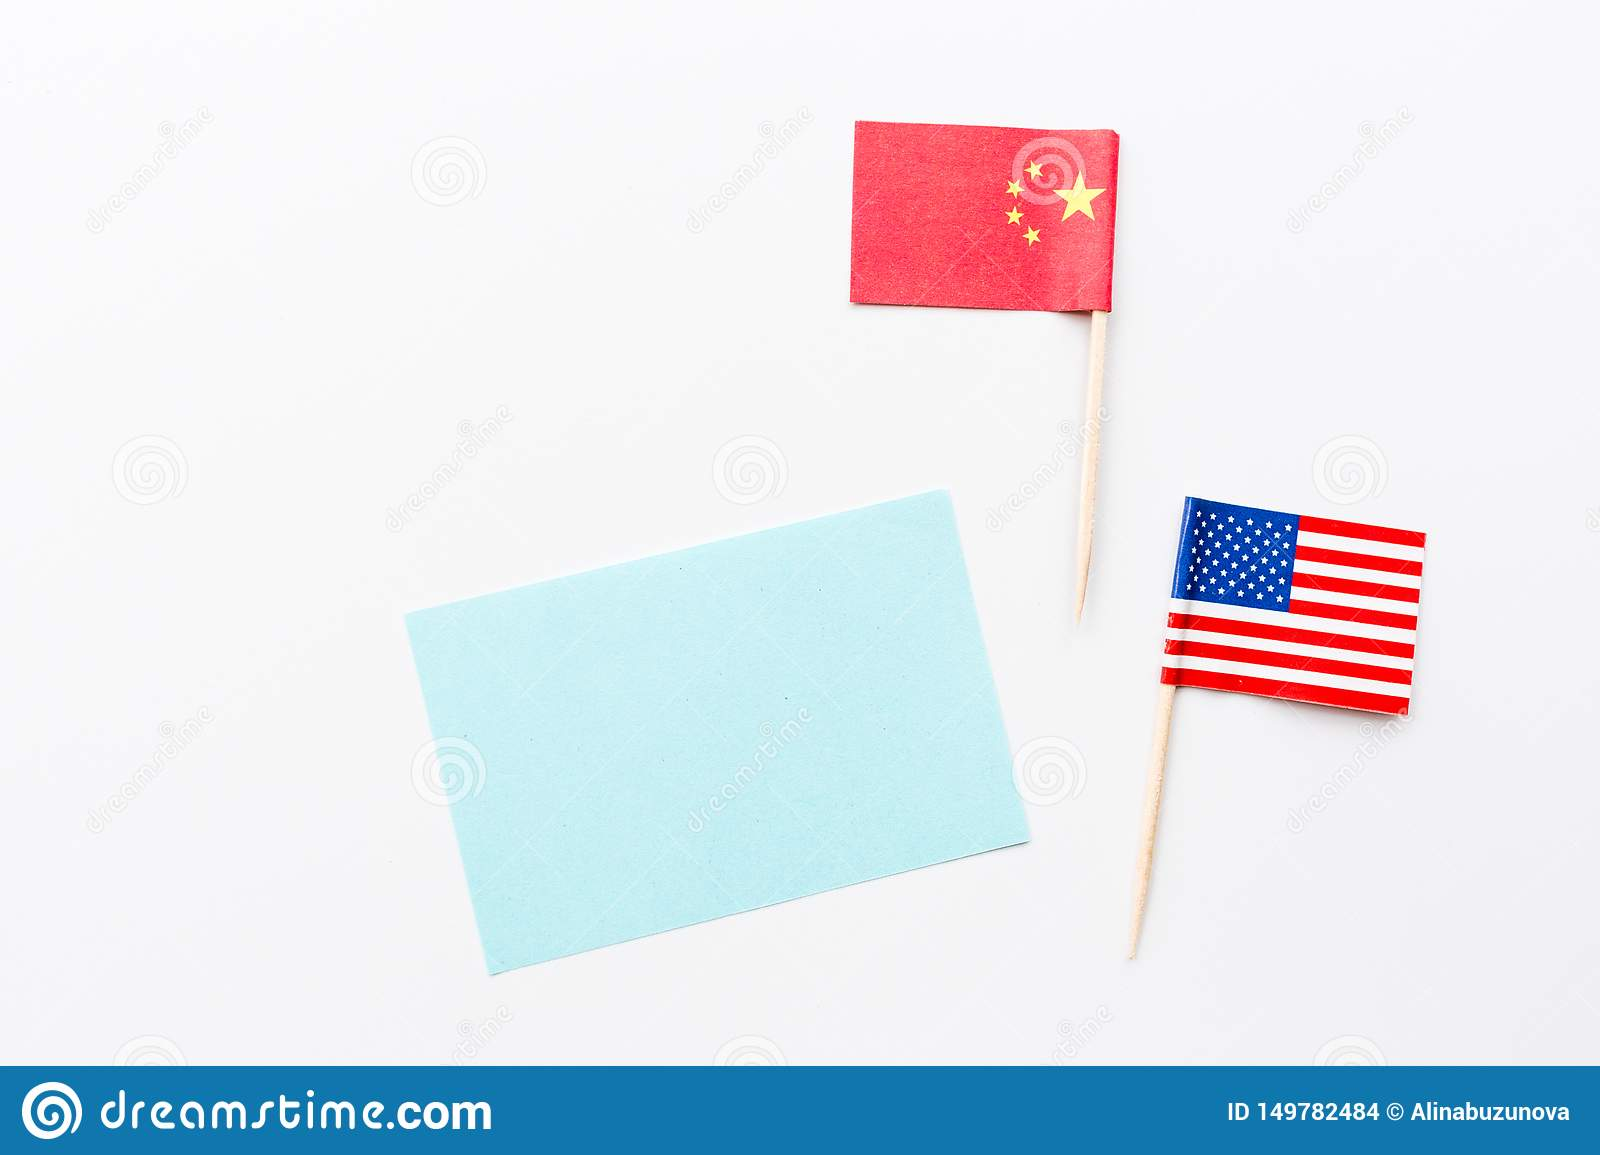 Creative top view flat lay of China and USA flag, mockup and copy space on white background in minimal style. Concept of